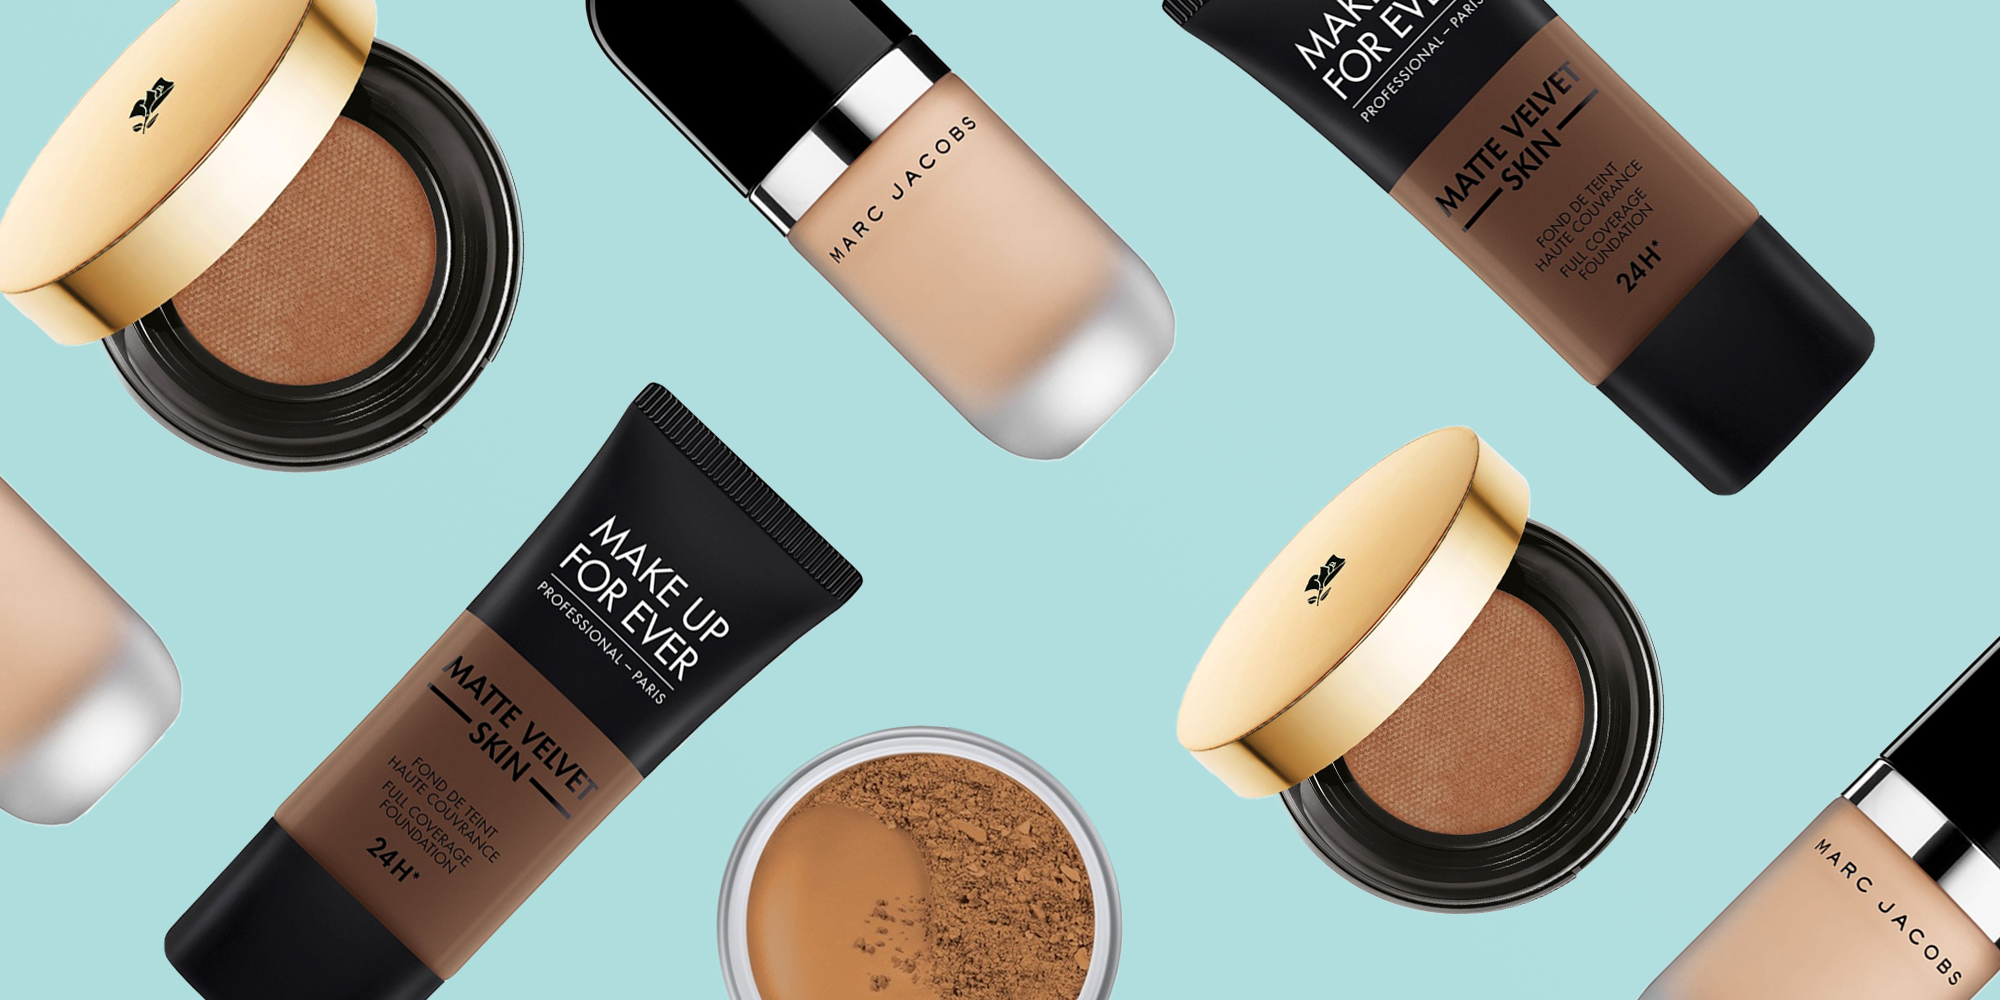 13 Best Foundations For Oily Skin 2021 Powder And Liquid Foundation For Shine Free Skin